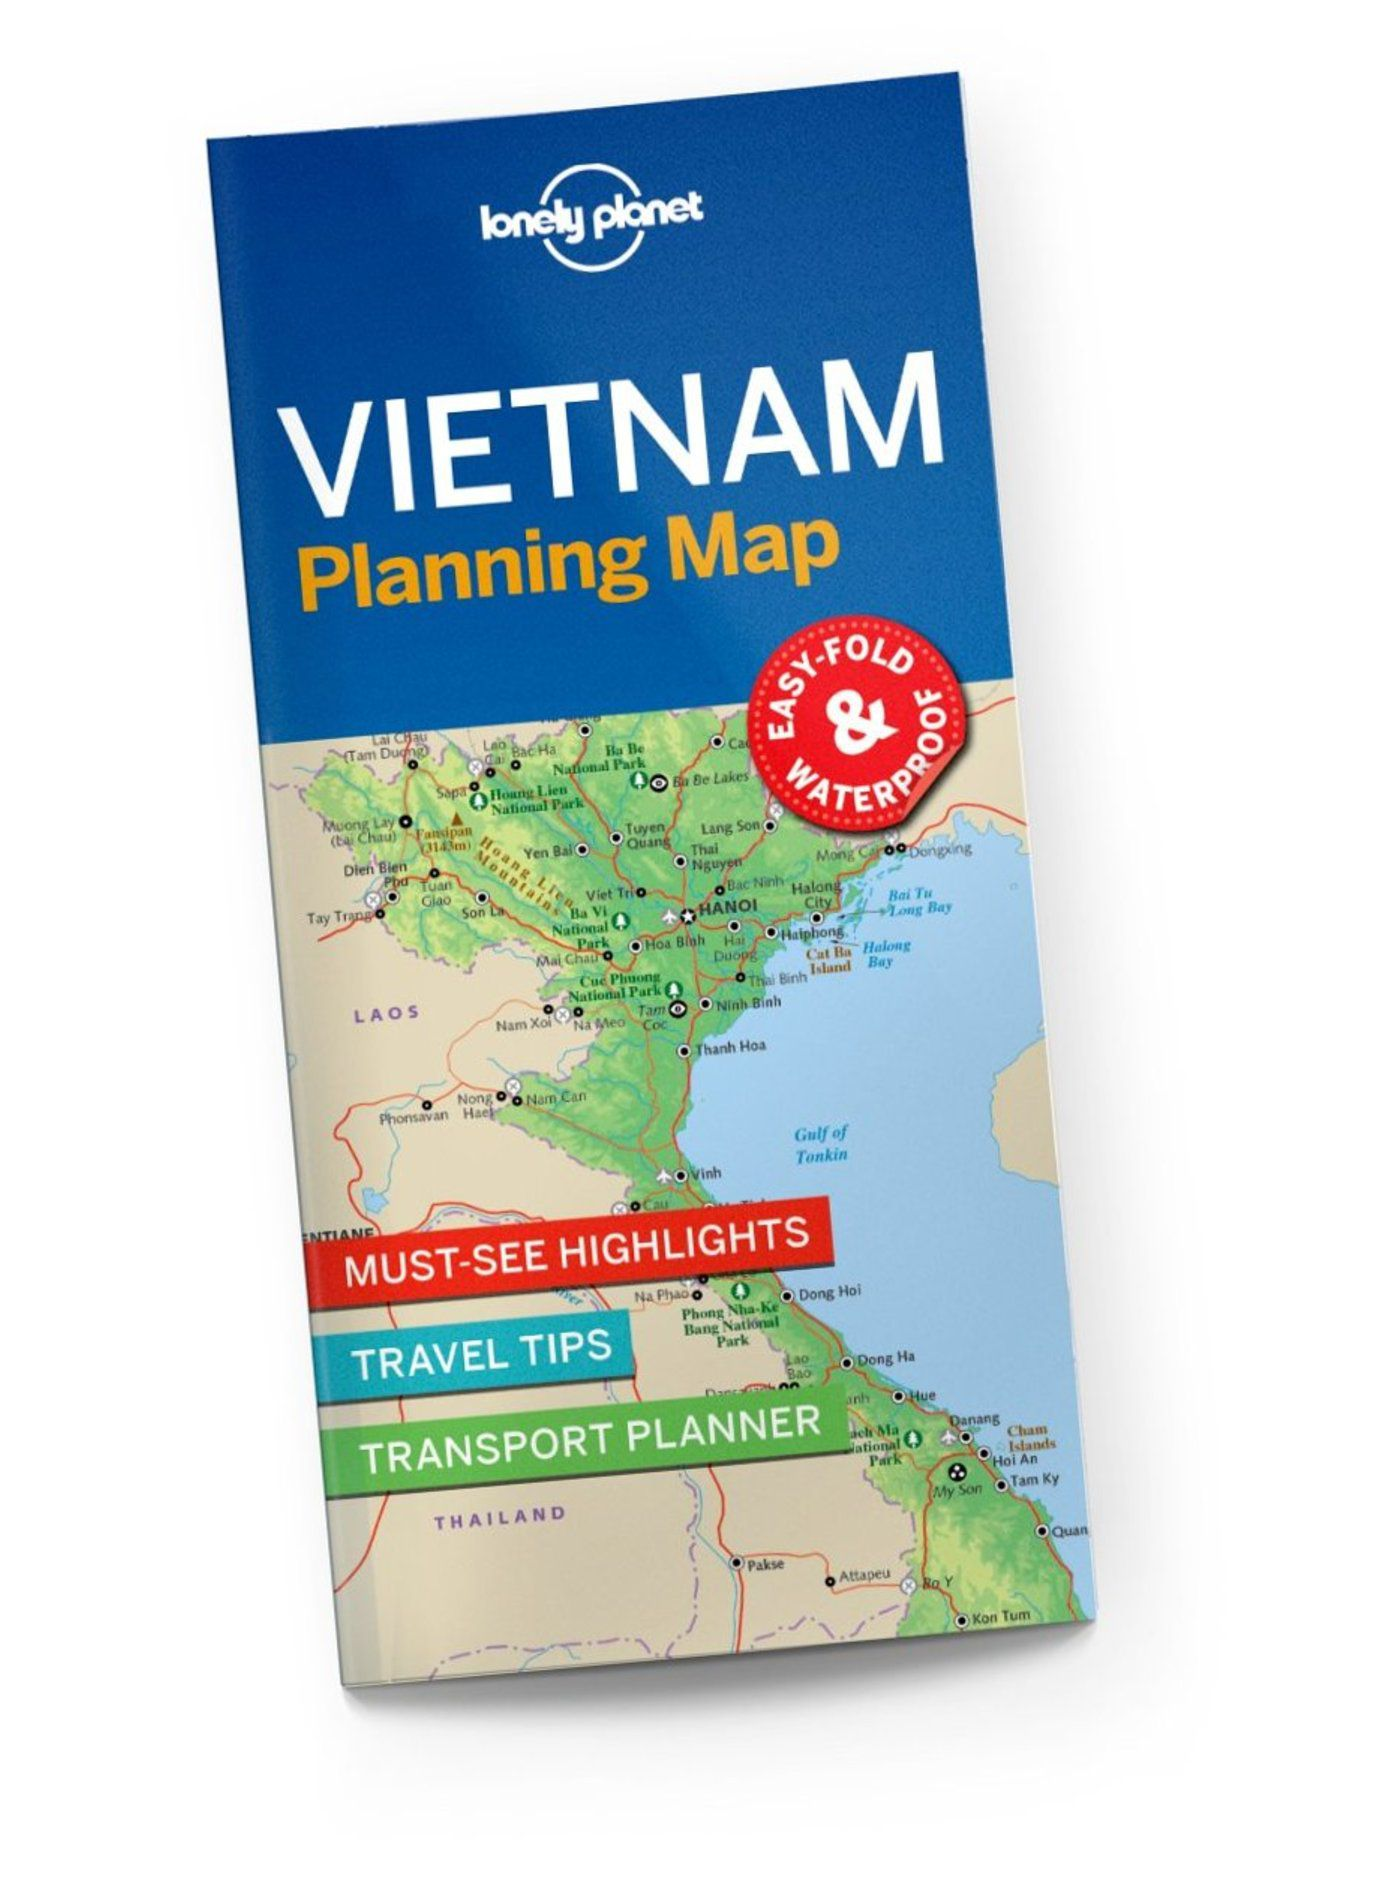 Lonely Planet Vietnam Planning Map 1st Ed.